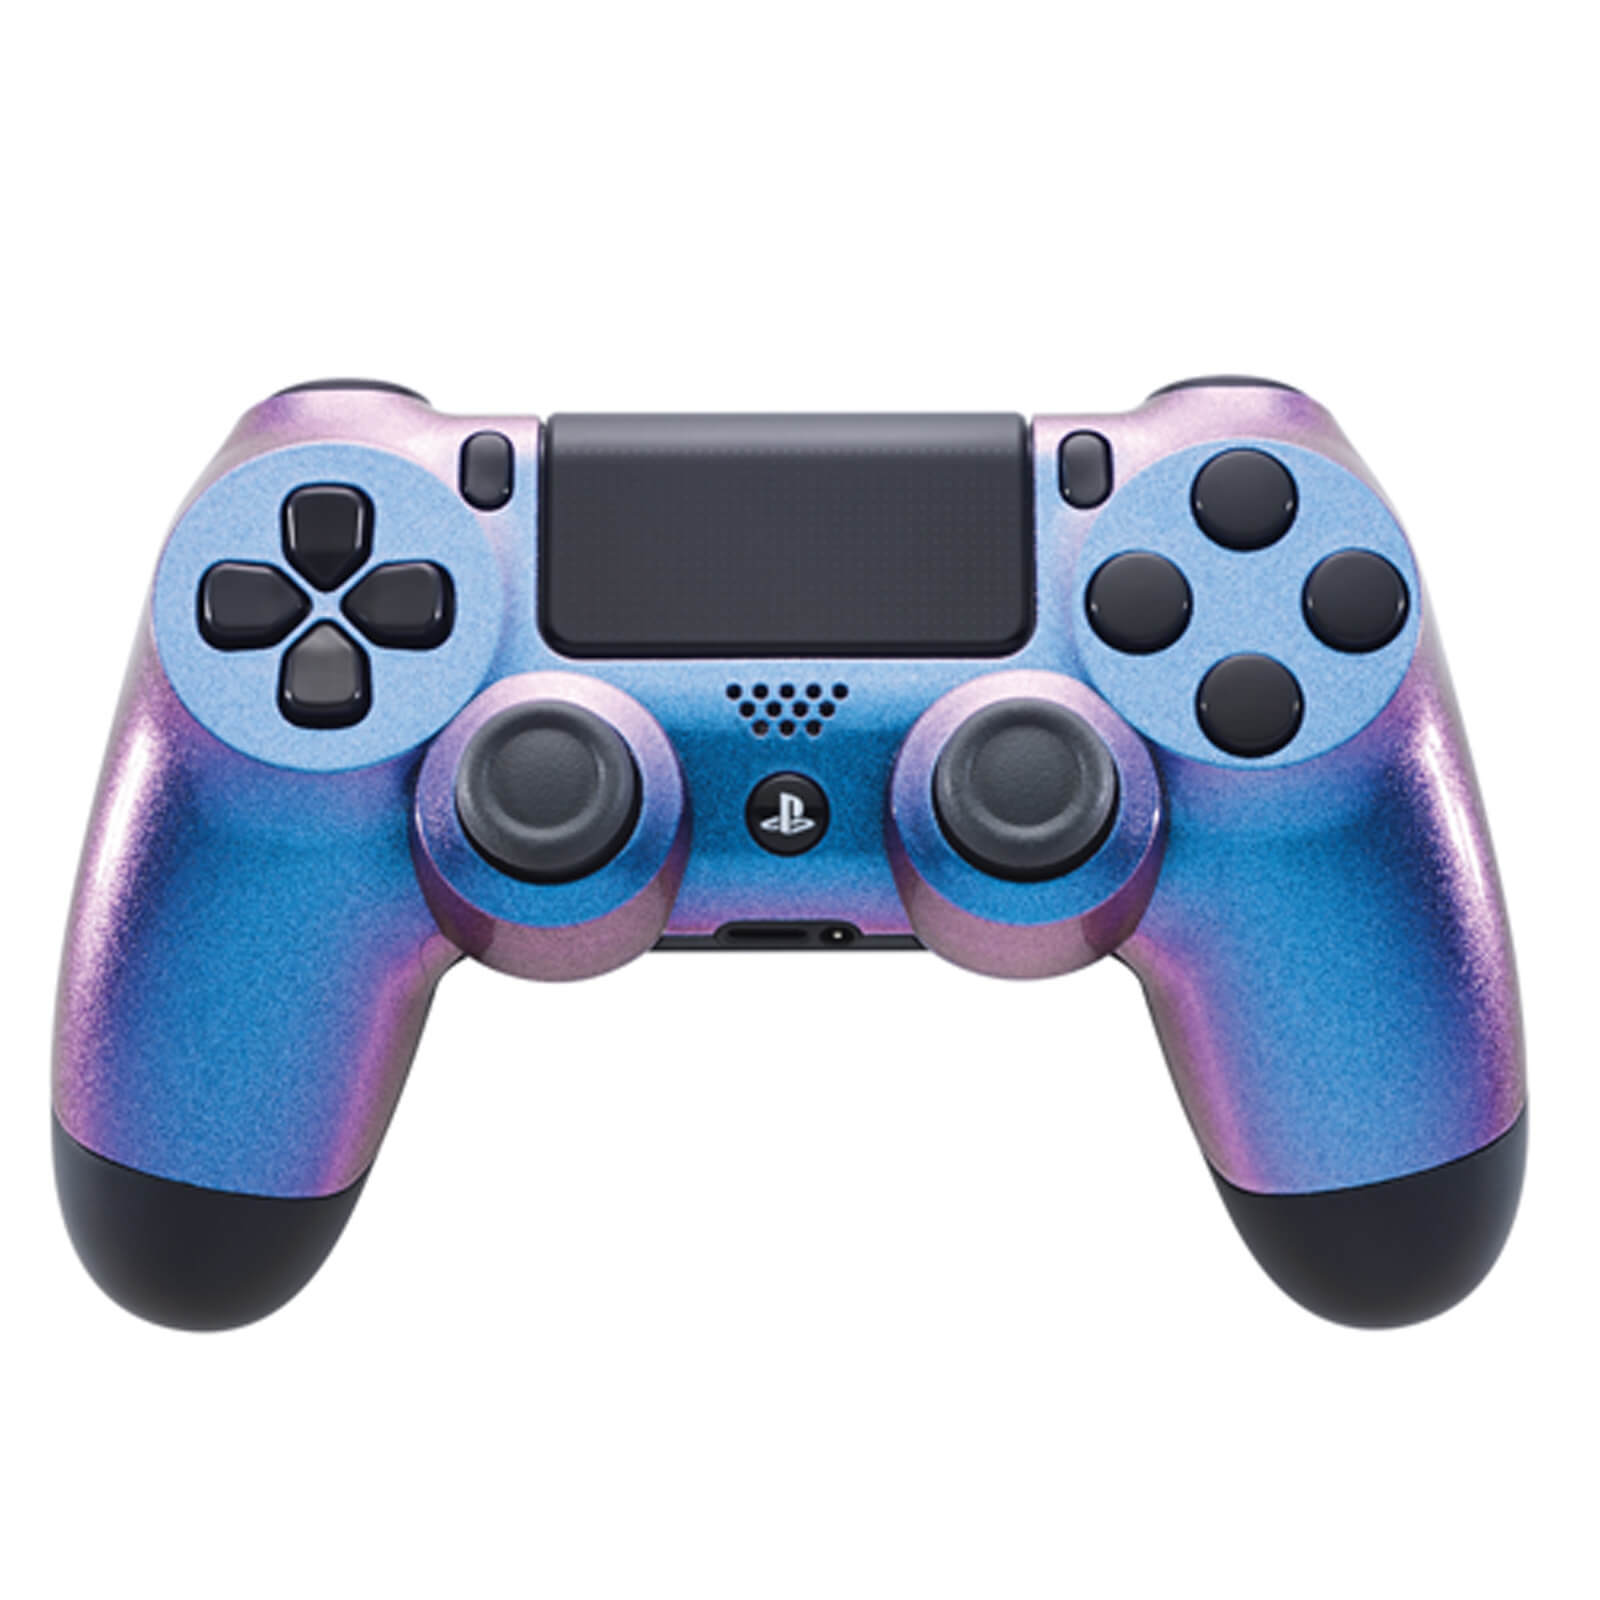 Playstation 4 Controller - Two-Tone Edition